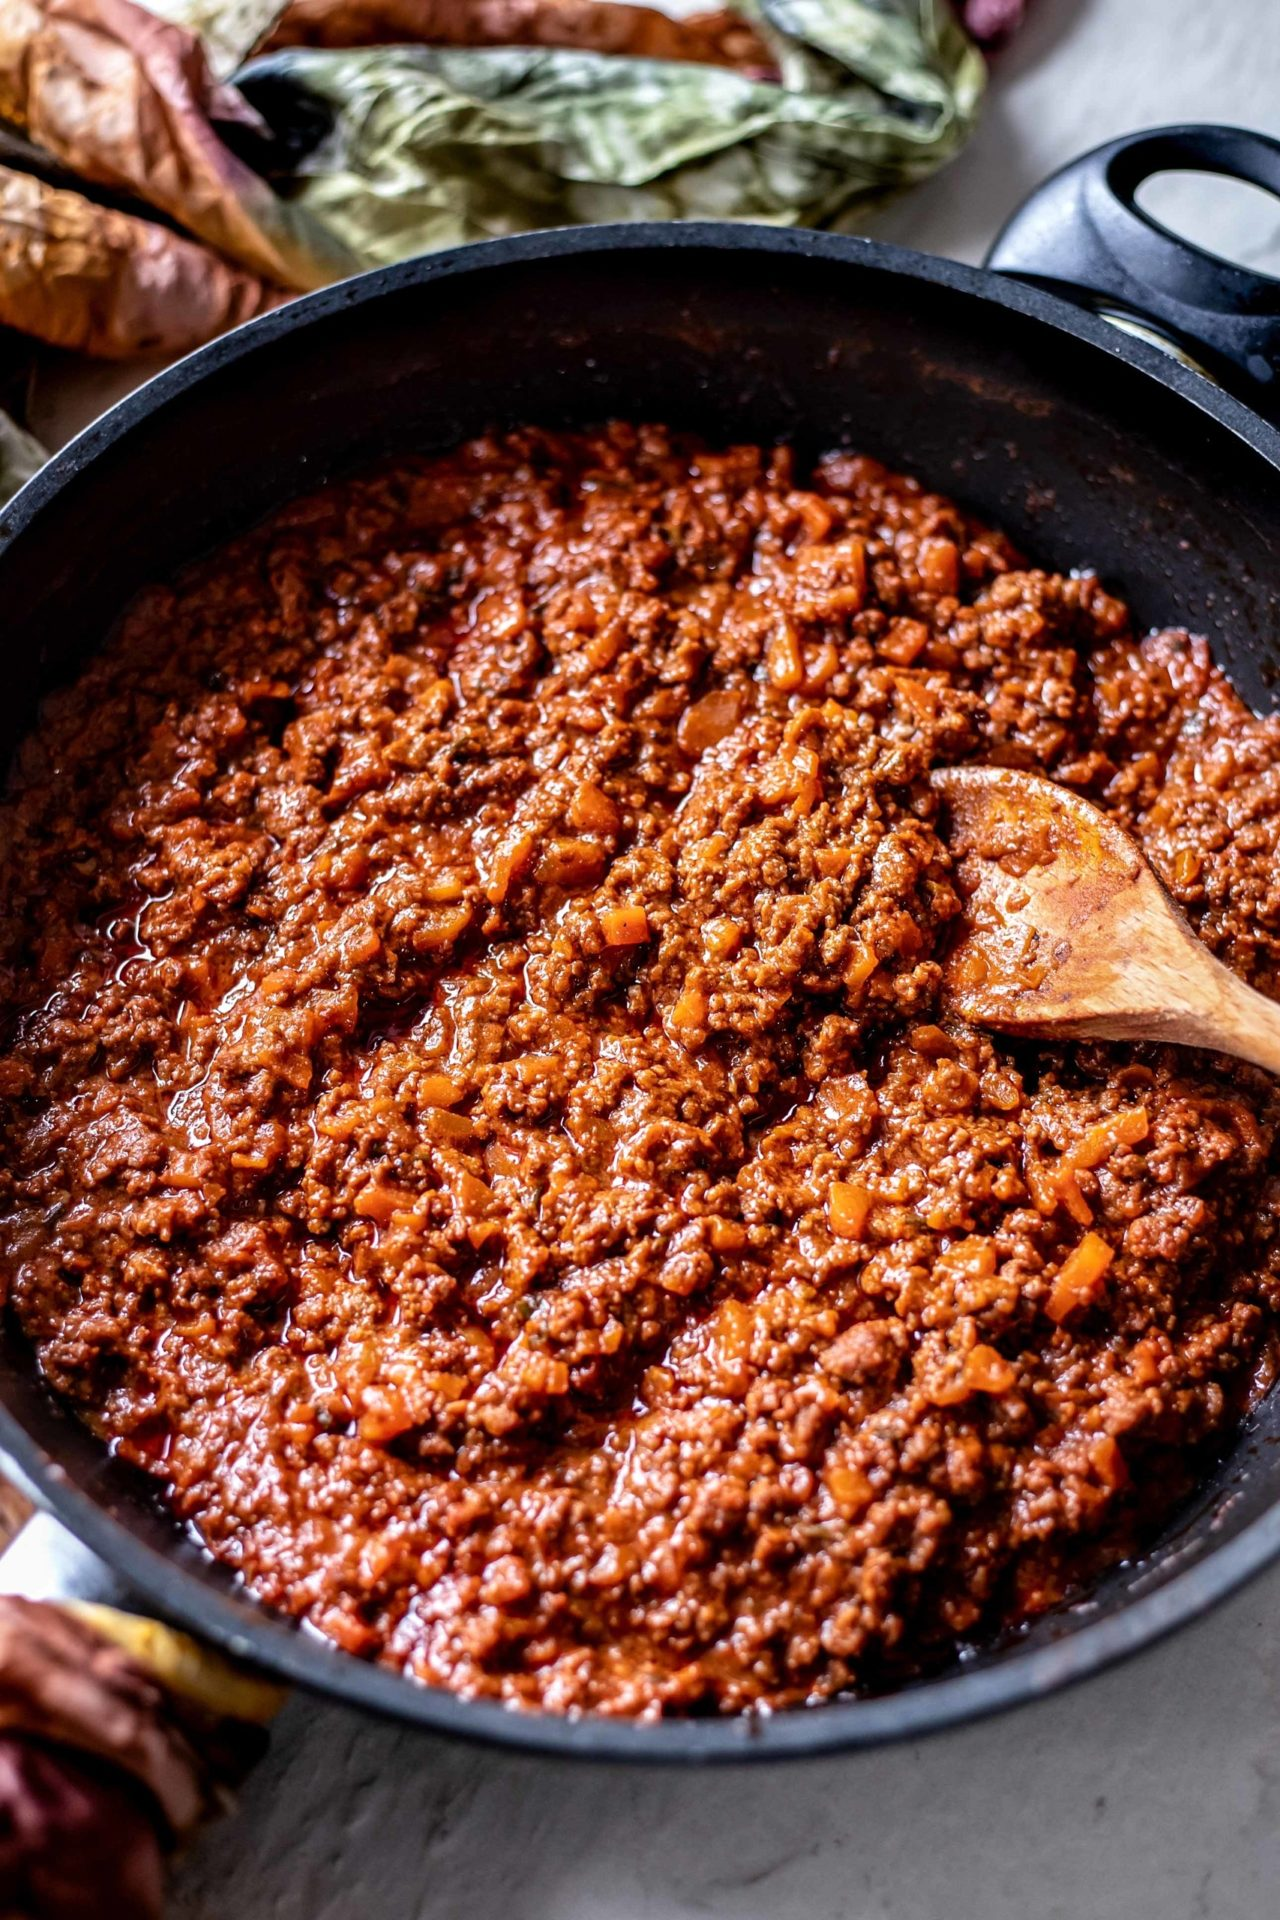 This Low FODMAP Spaghetti Bolognese is rich, saucy, thick, super flavourful, simple to make, and very delicious!